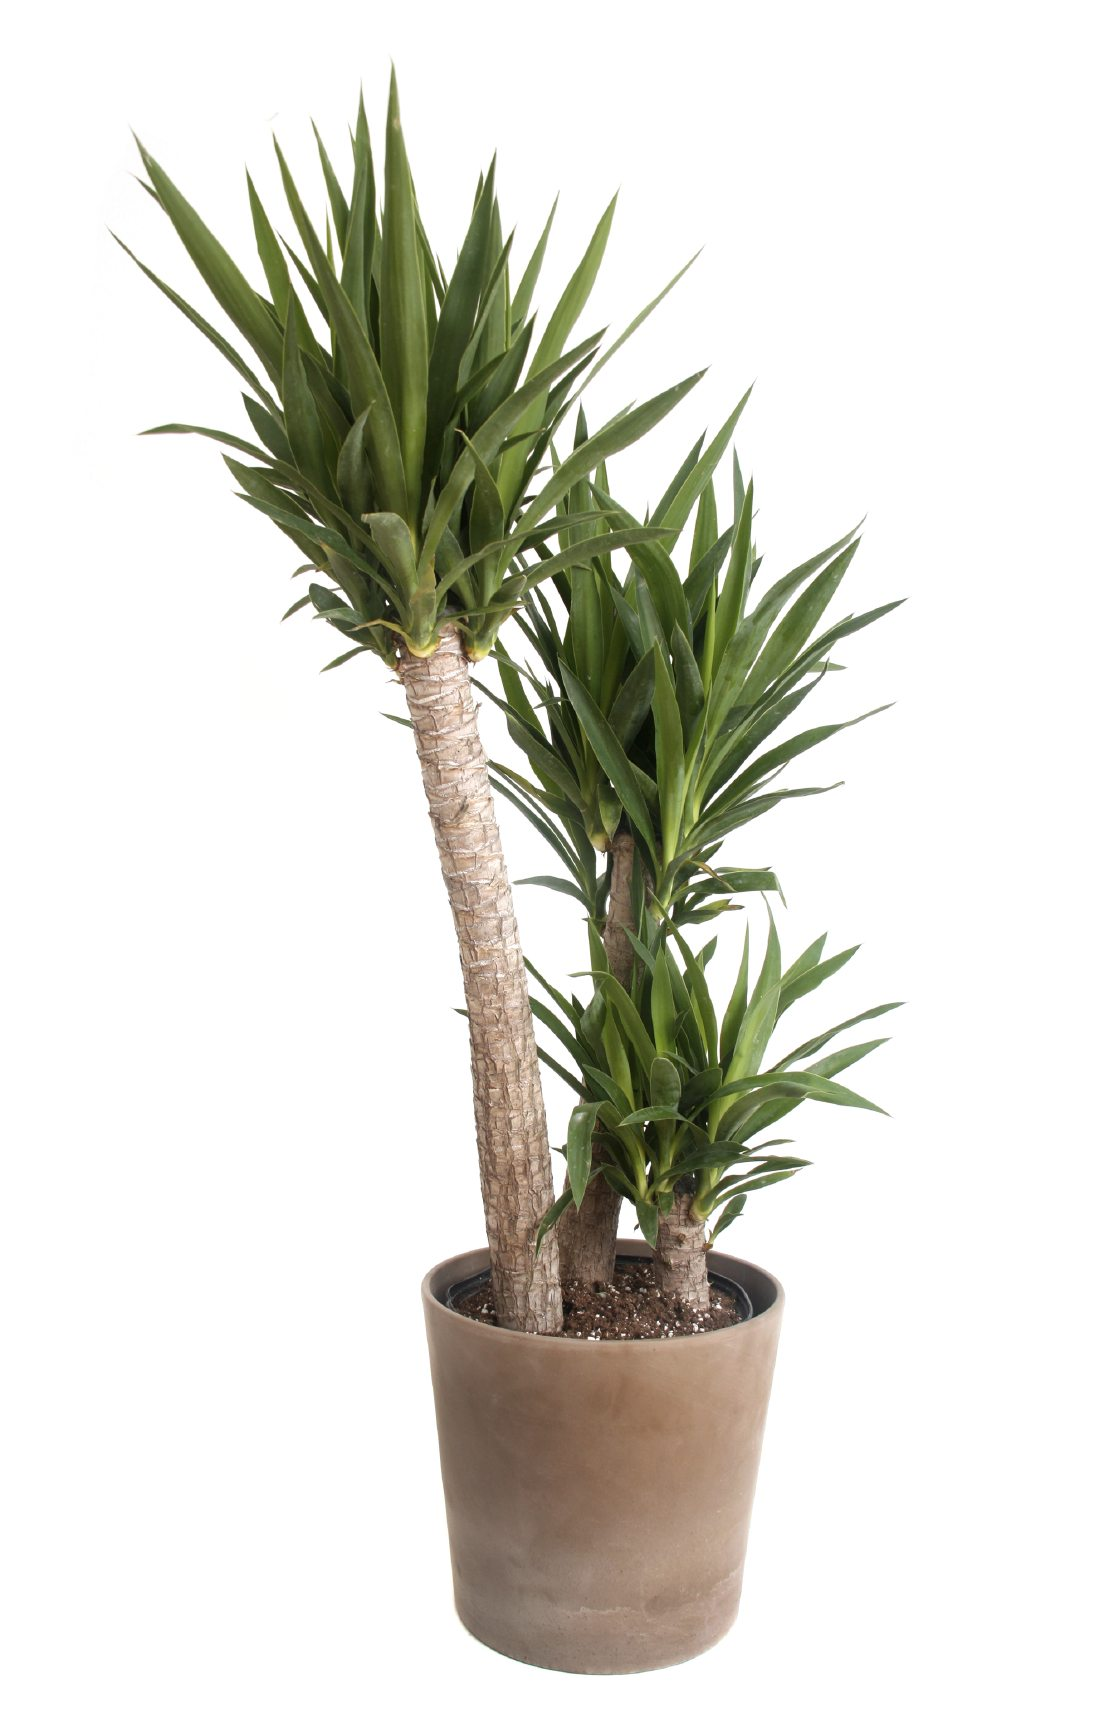 Yucca Plant Care Tips Growing Advice: Repotting Yucca Houseplants And